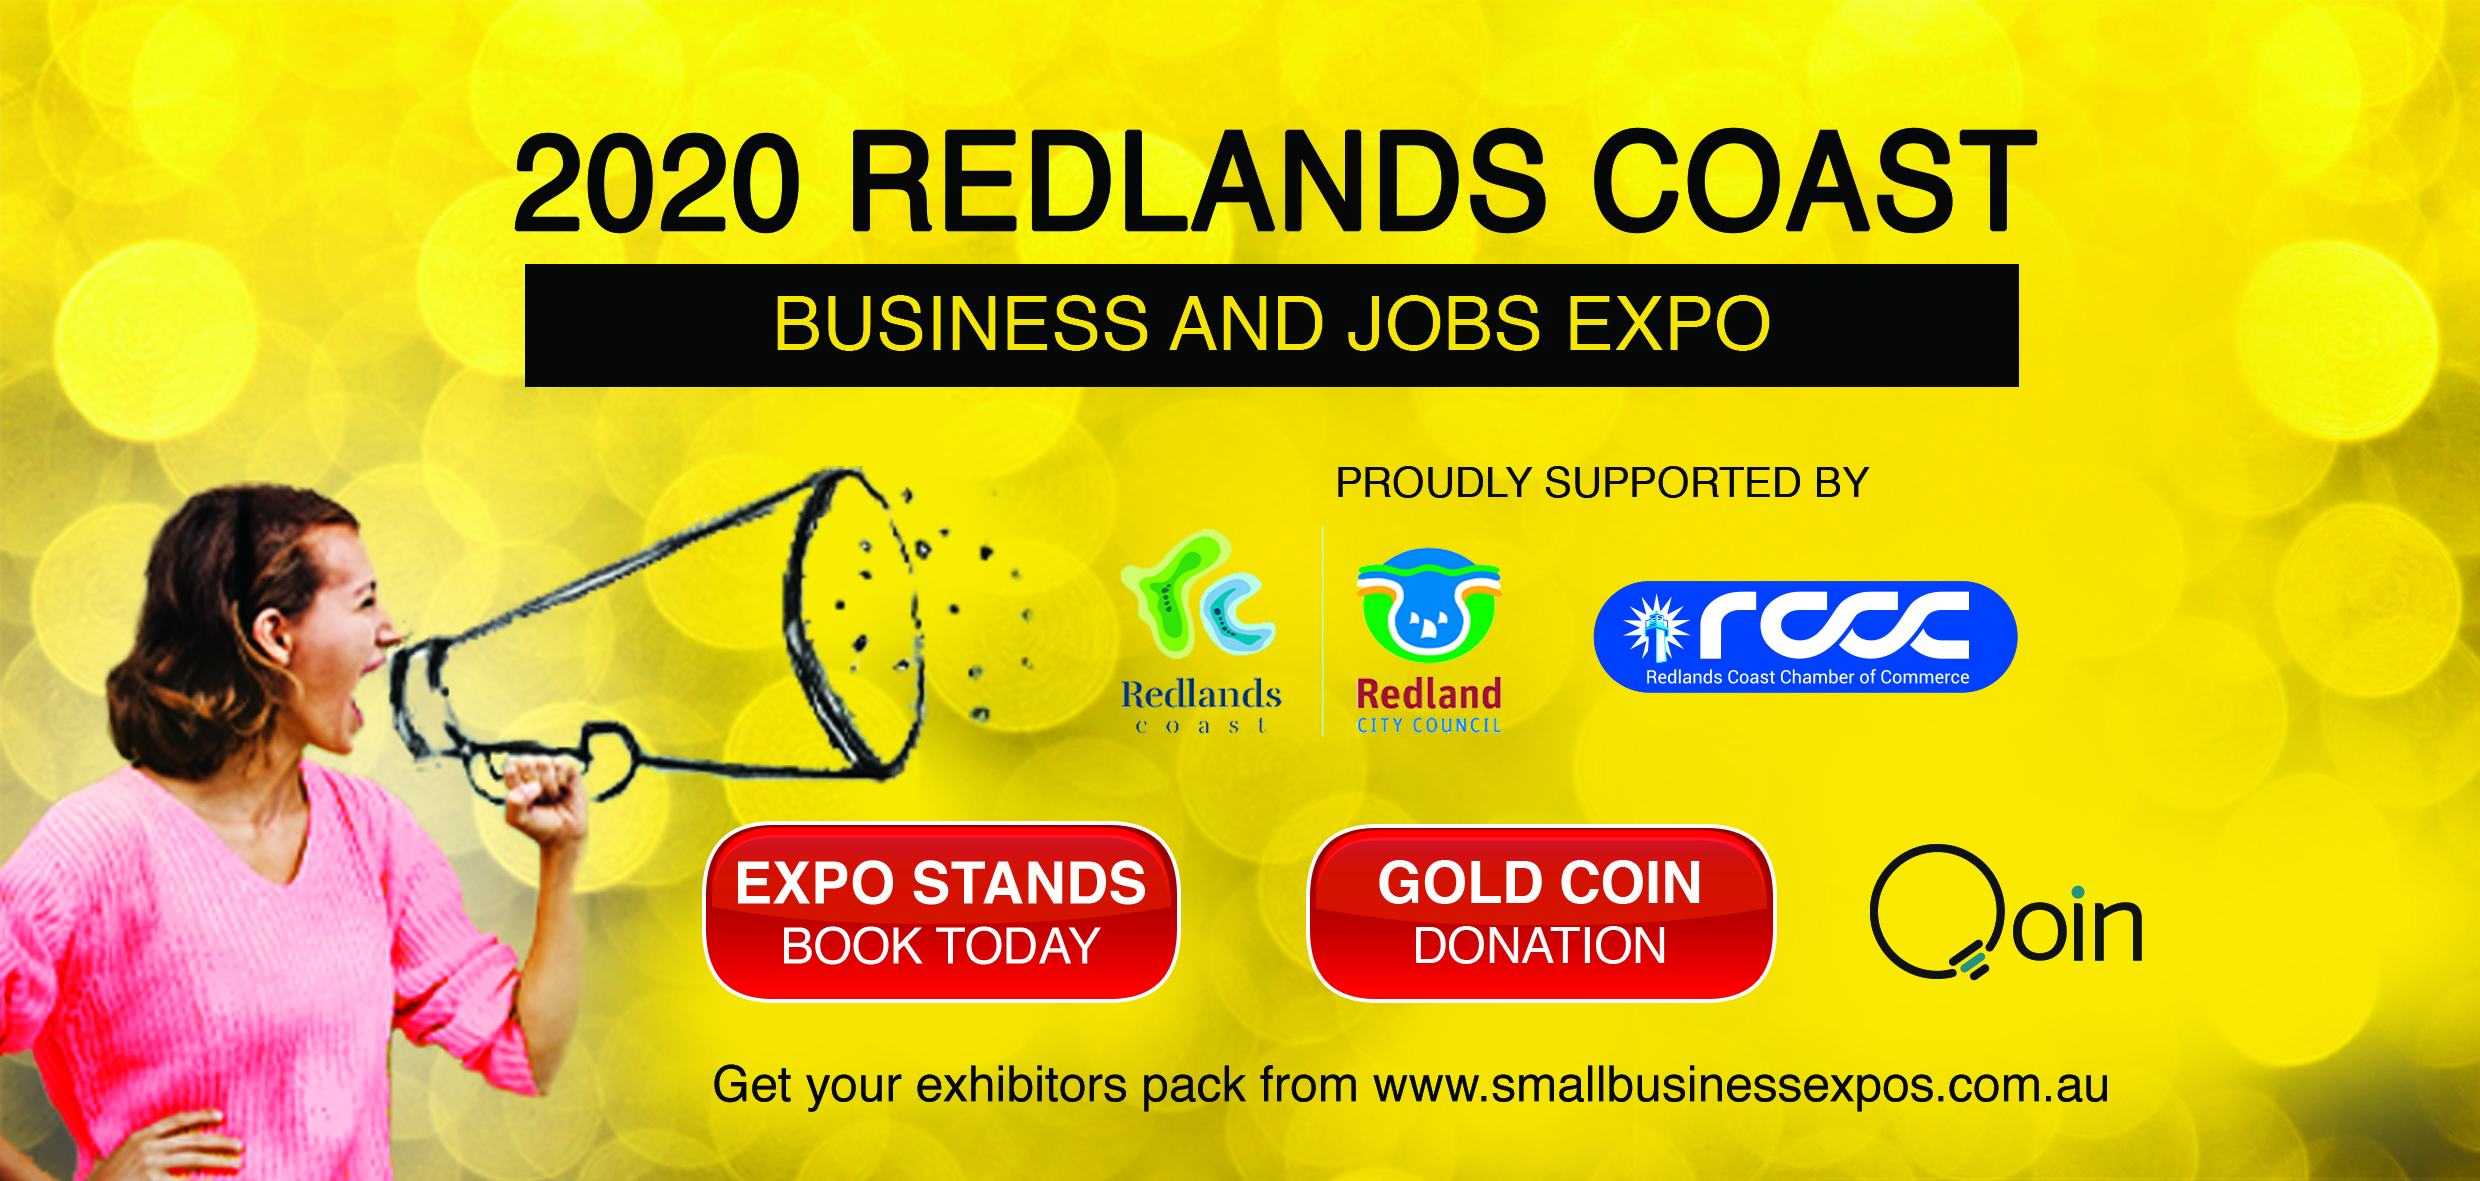 Business Expos | Brisbane | Gold Coast | Small Business Expos | Redlands Coast 2020 Dl Flyer Qoin Version (1)